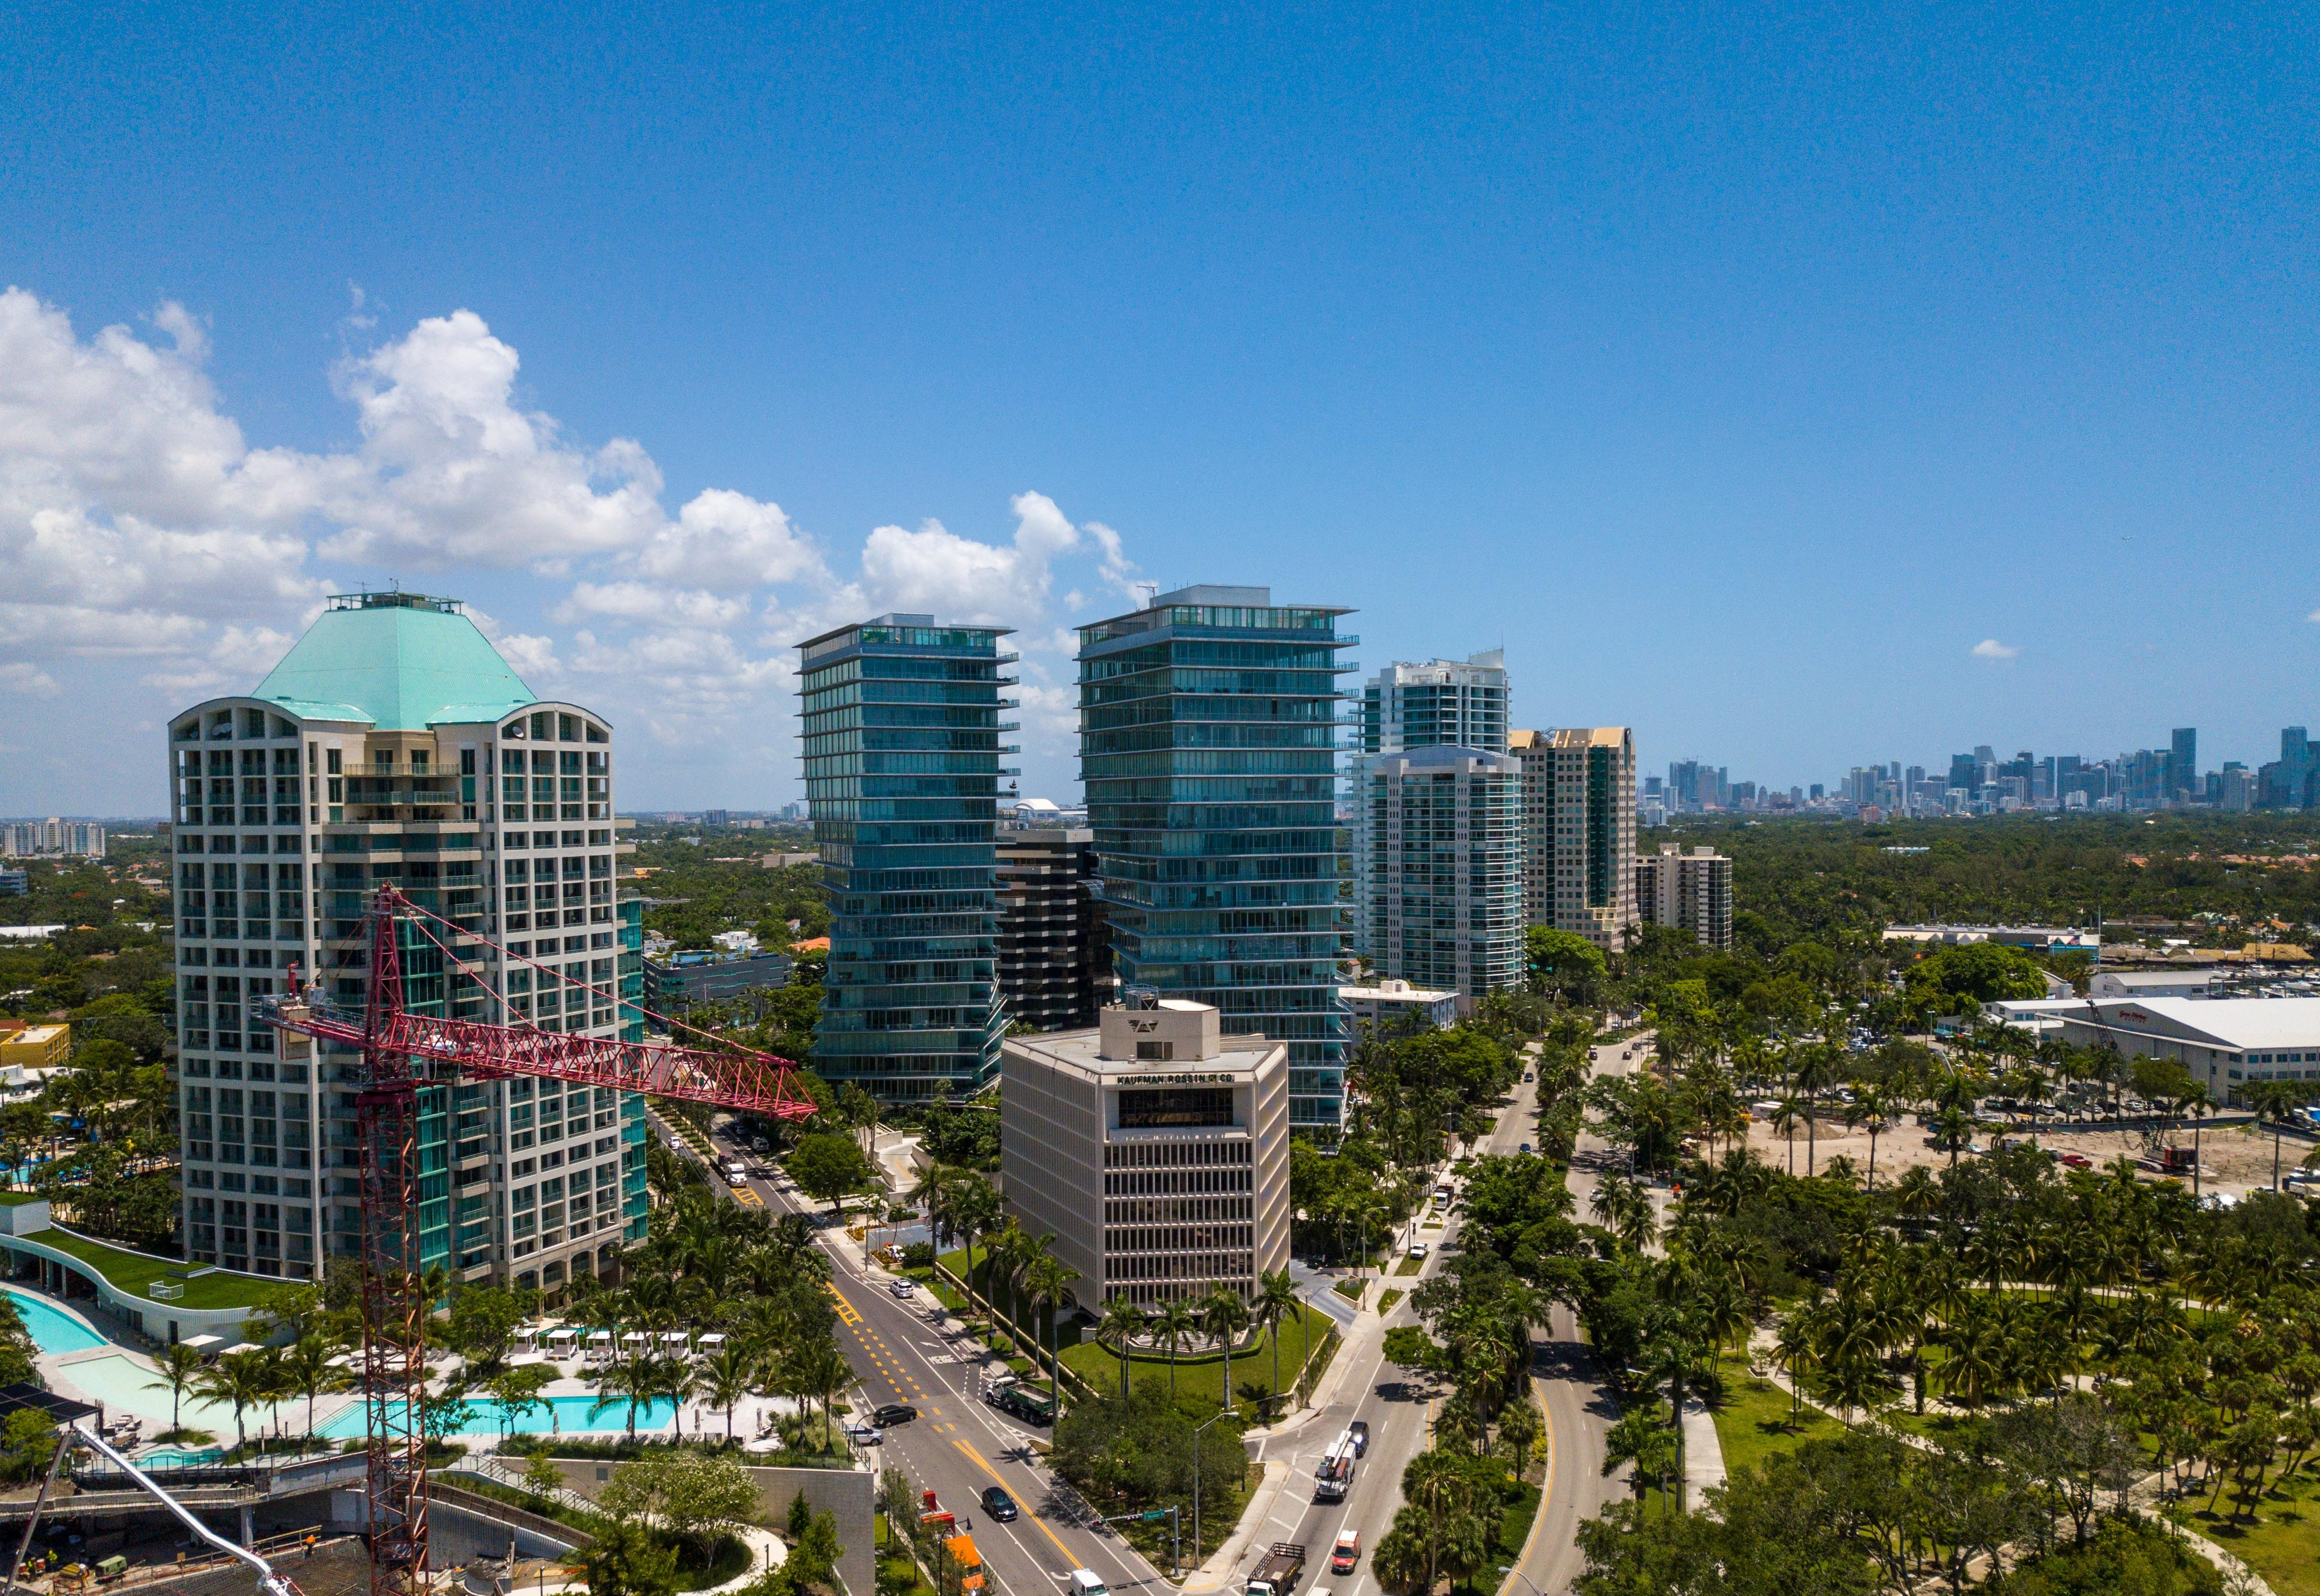 coconut-grove-accutour-real-estate-drone-photography-7.jpg